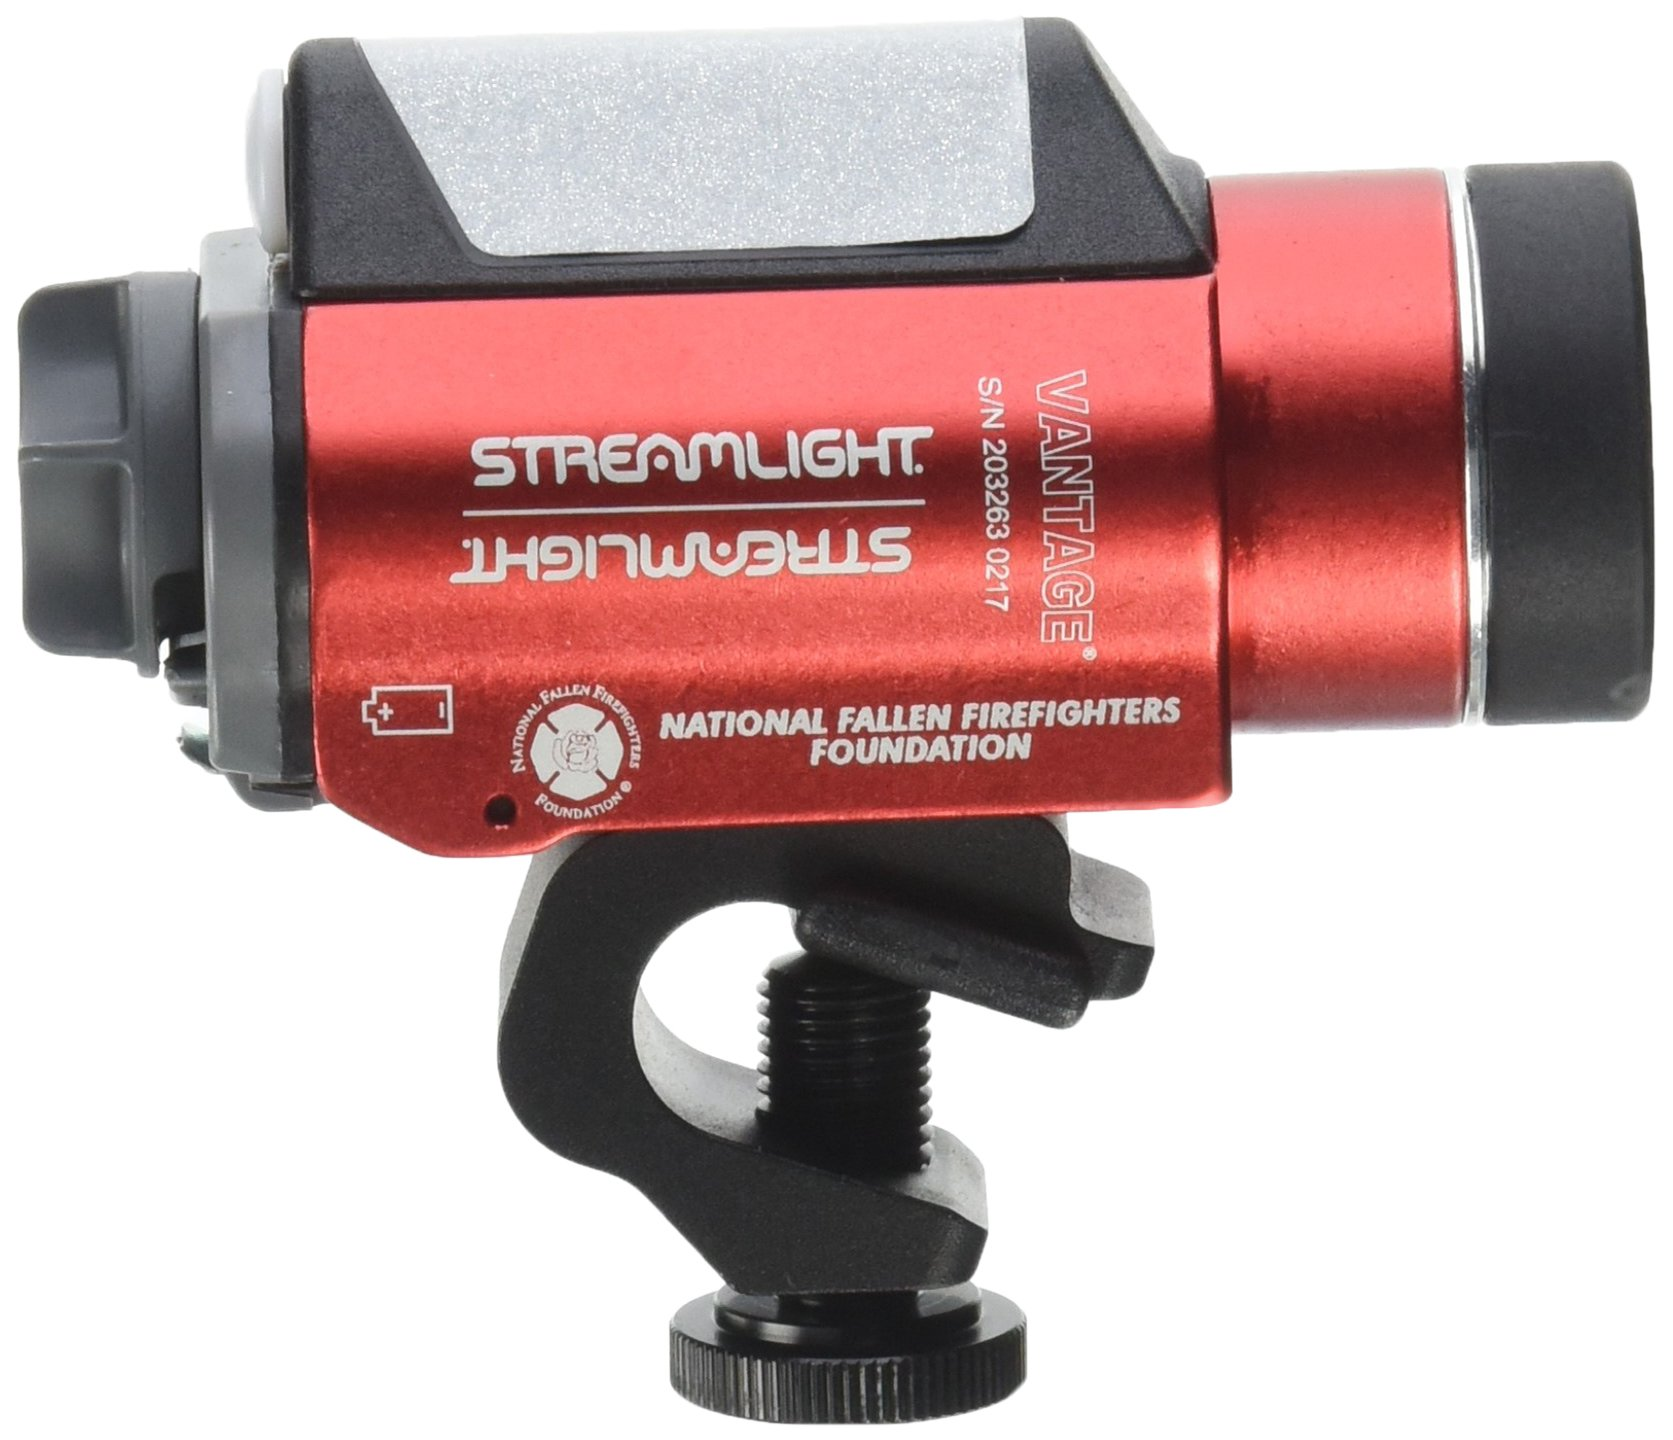 Streamlight 69157 Vantage Tactical Helmet Light with White LED, Red